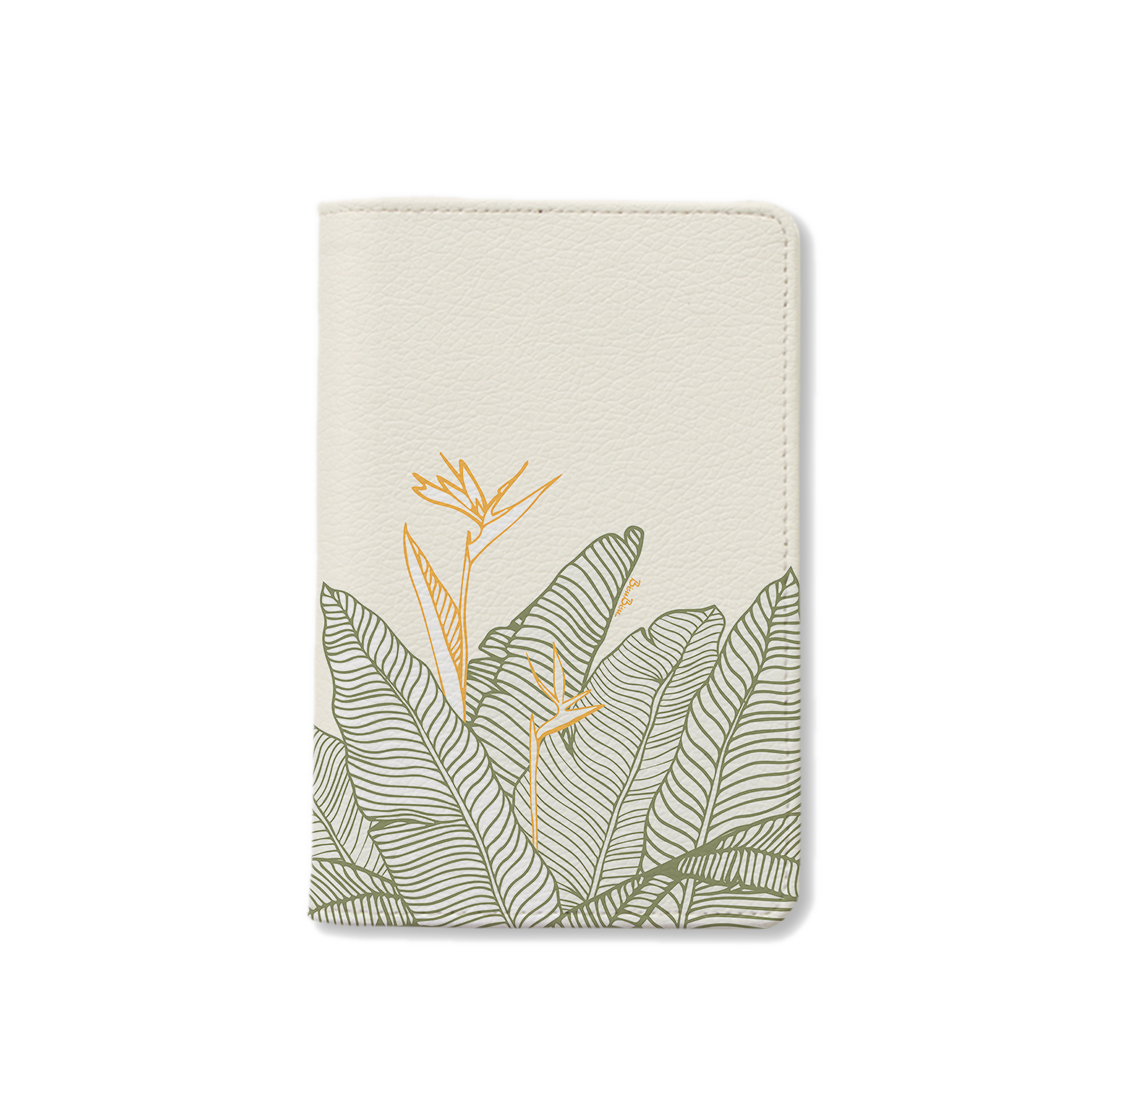 BISU BISU - PASSPORT HOLDER - BANANA LEAVES